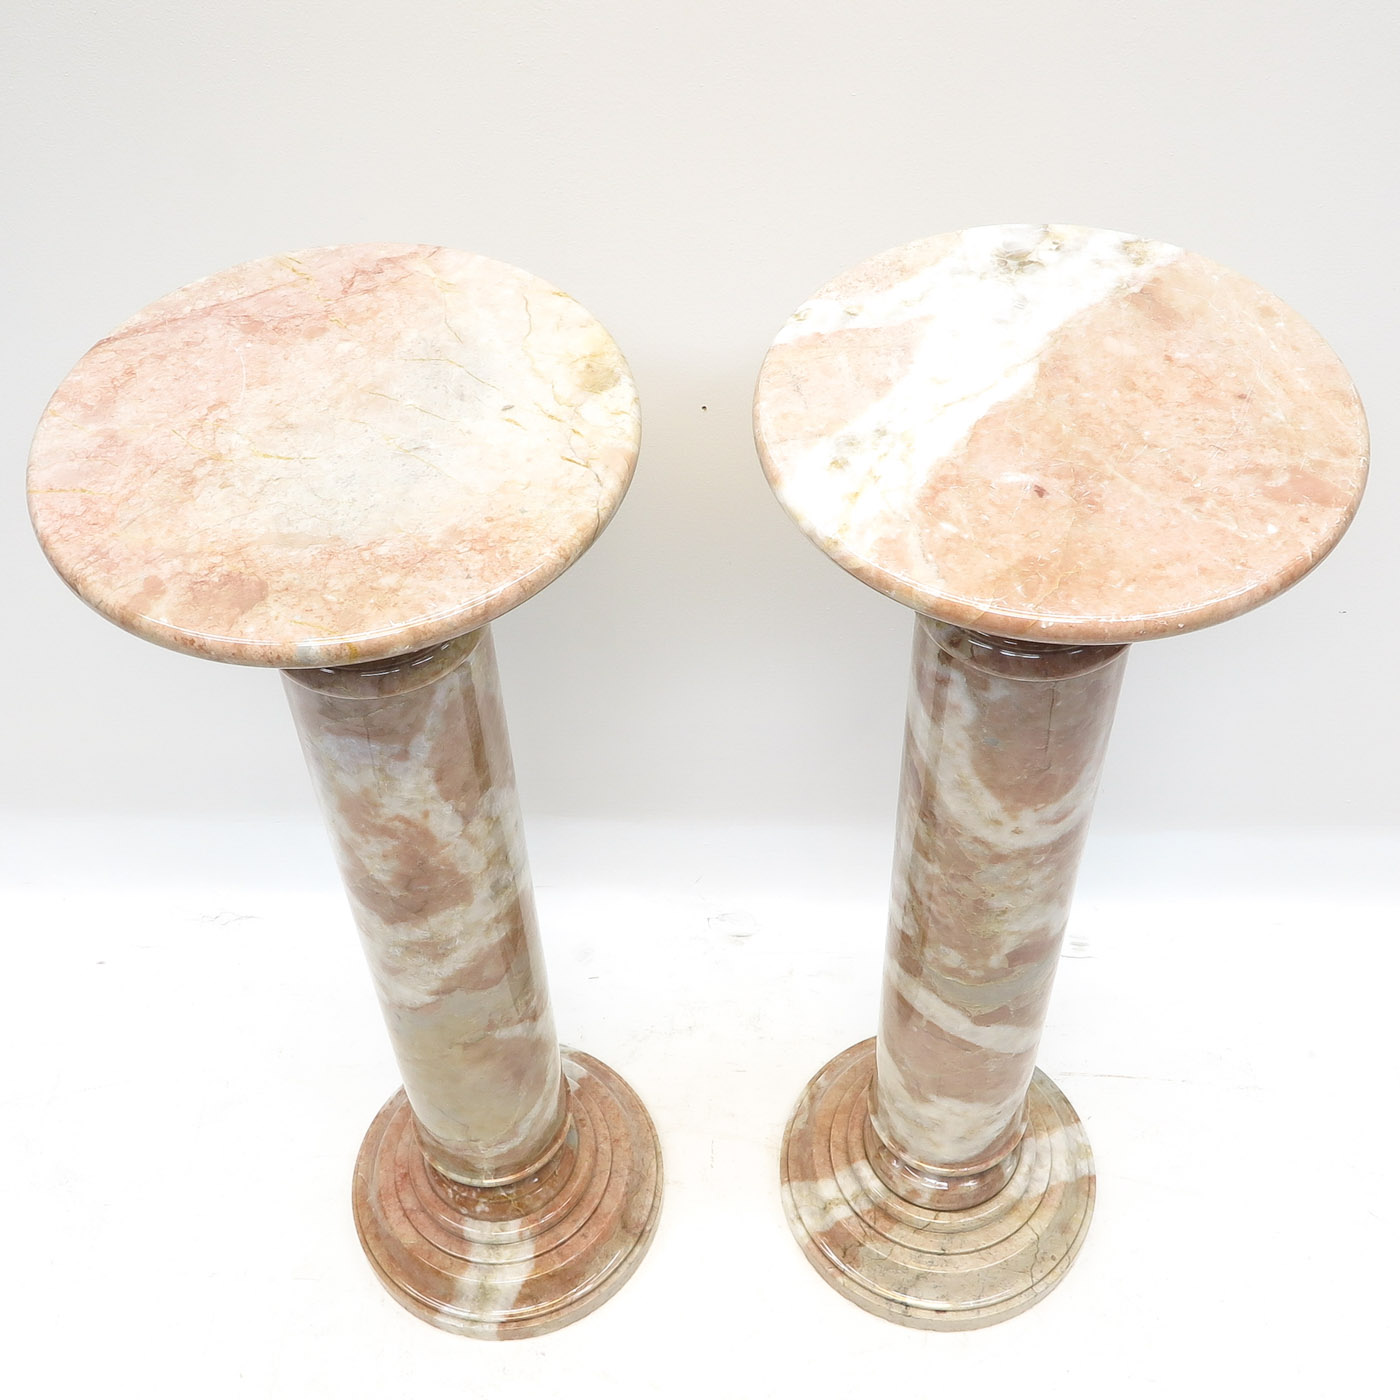 Lot 1053 - A Pair of Marble Pedestals